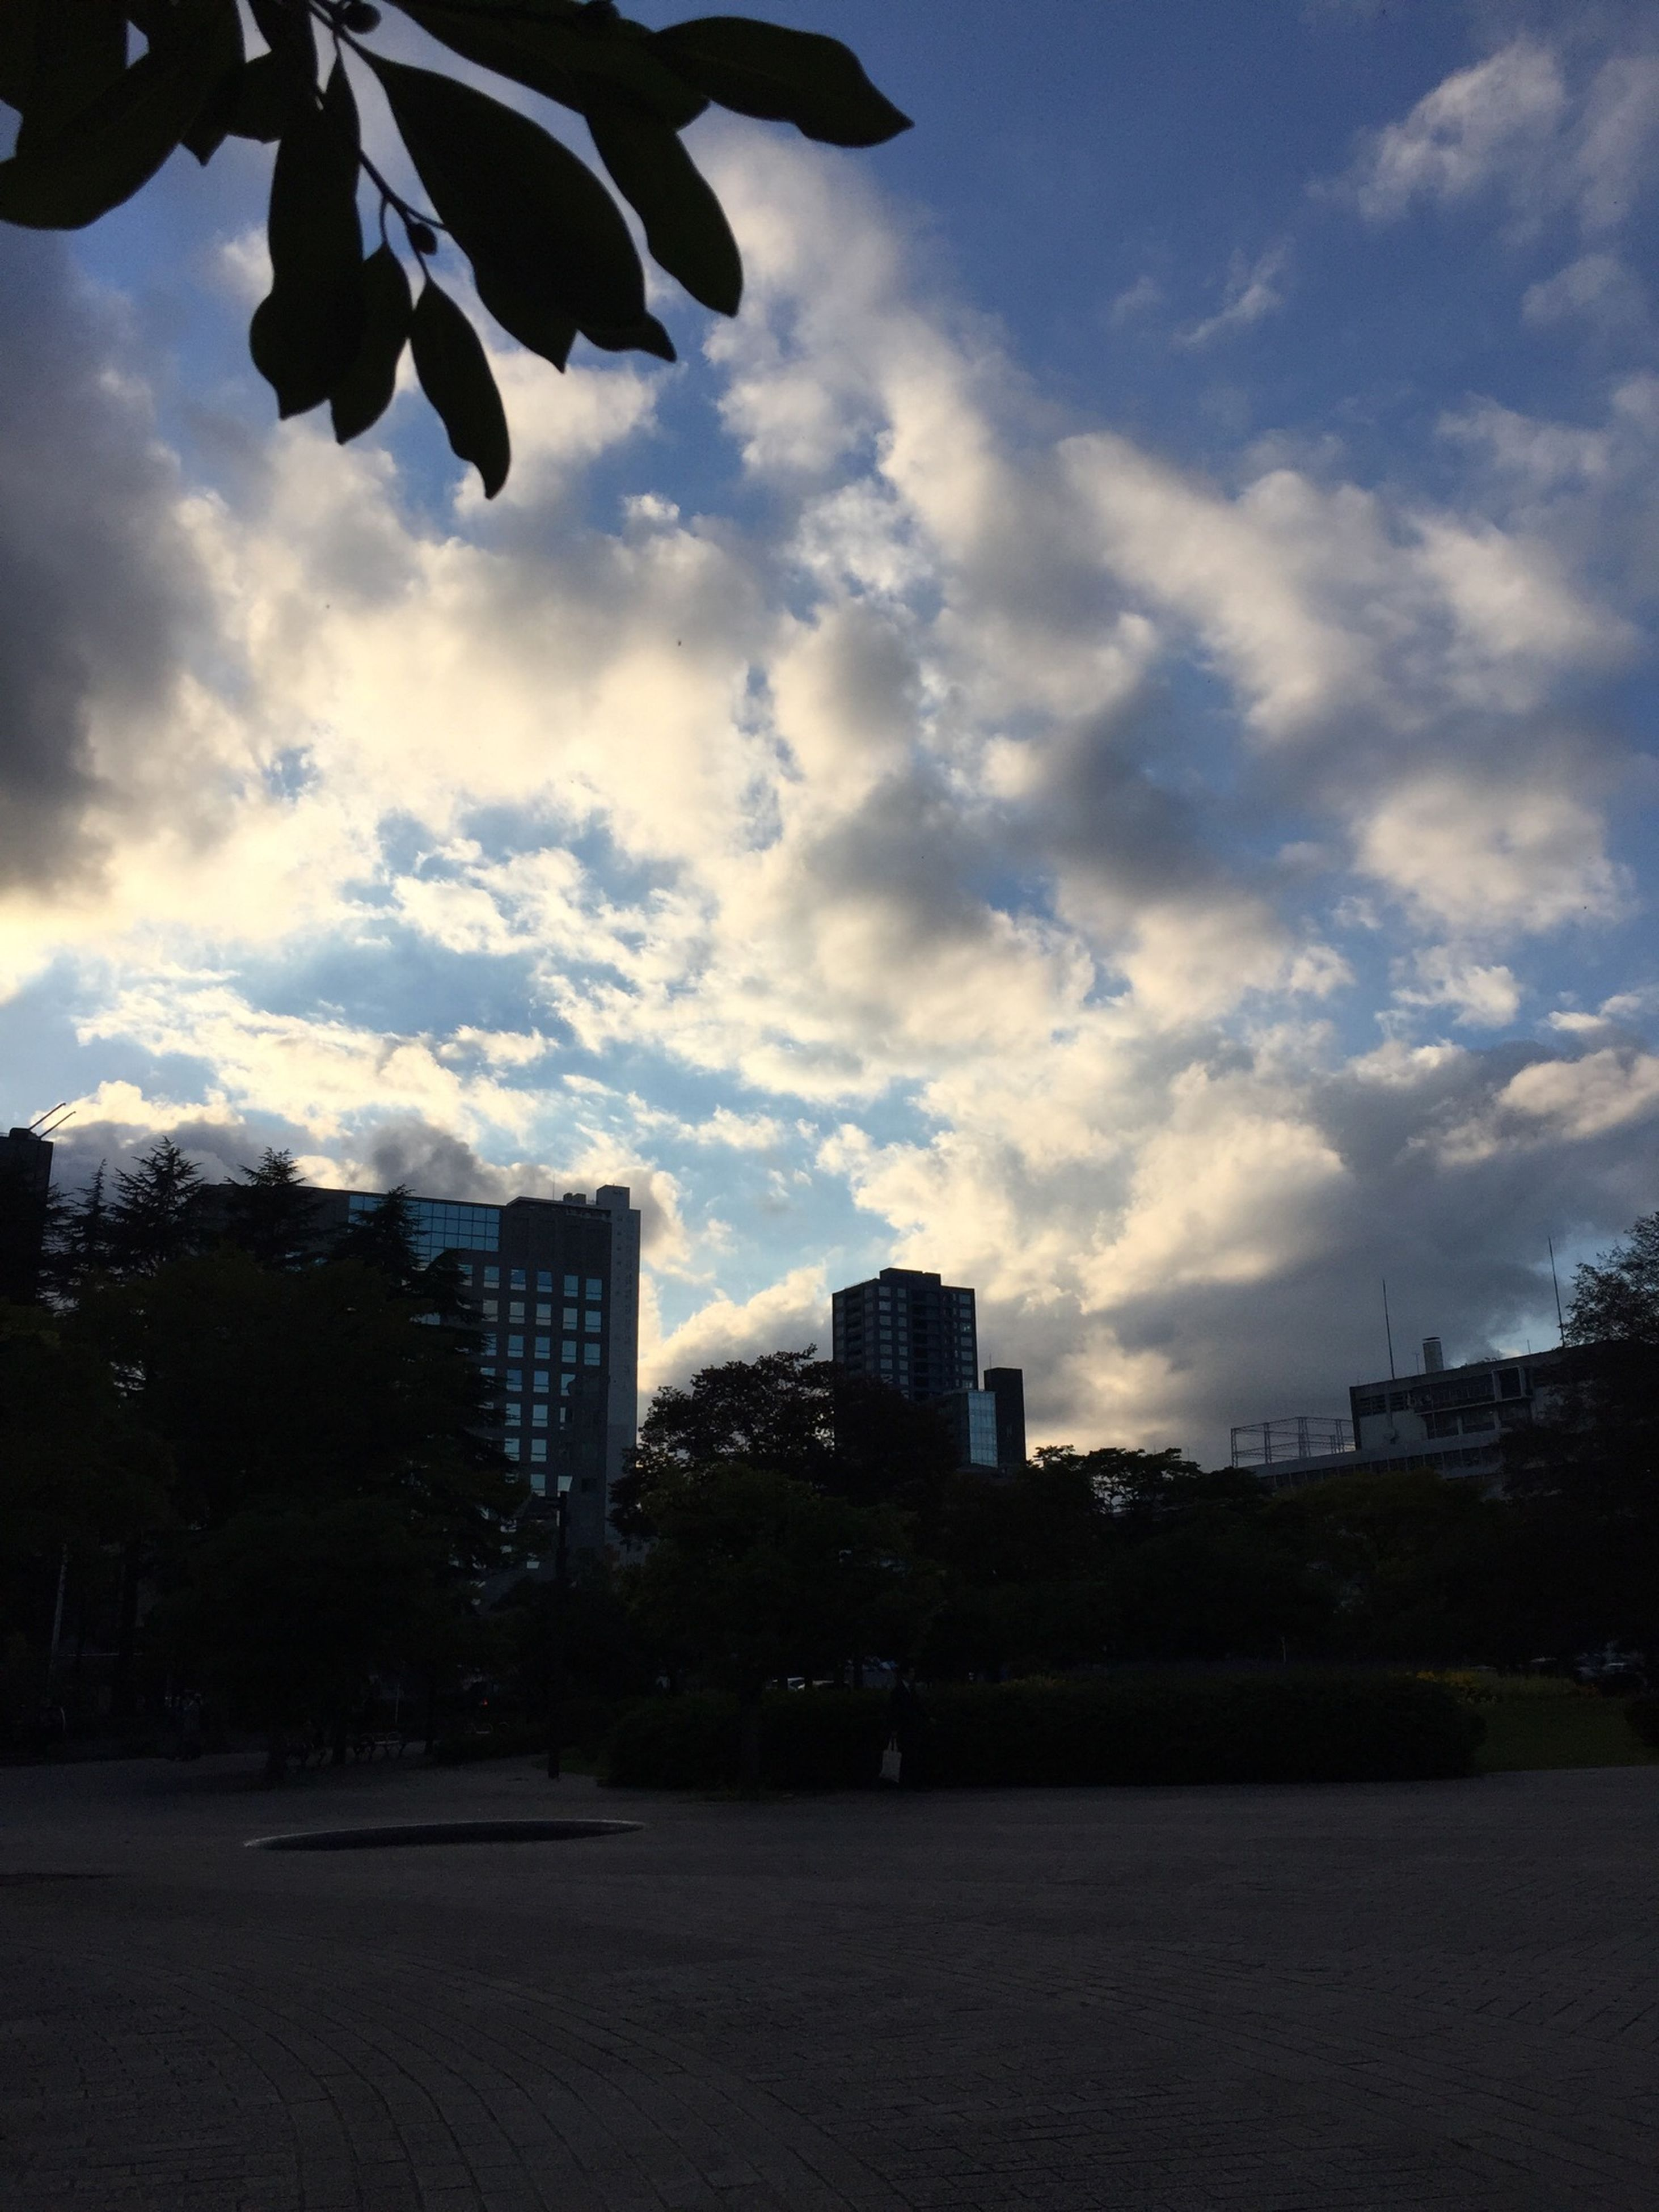 sky, building exterior, architecture, built structure, city, cloud - sky, tree, cloud, cloudy, cityscape, outdoors, skyscraper, growth, modern, no people, building, dusk, residential building, silhouette, day